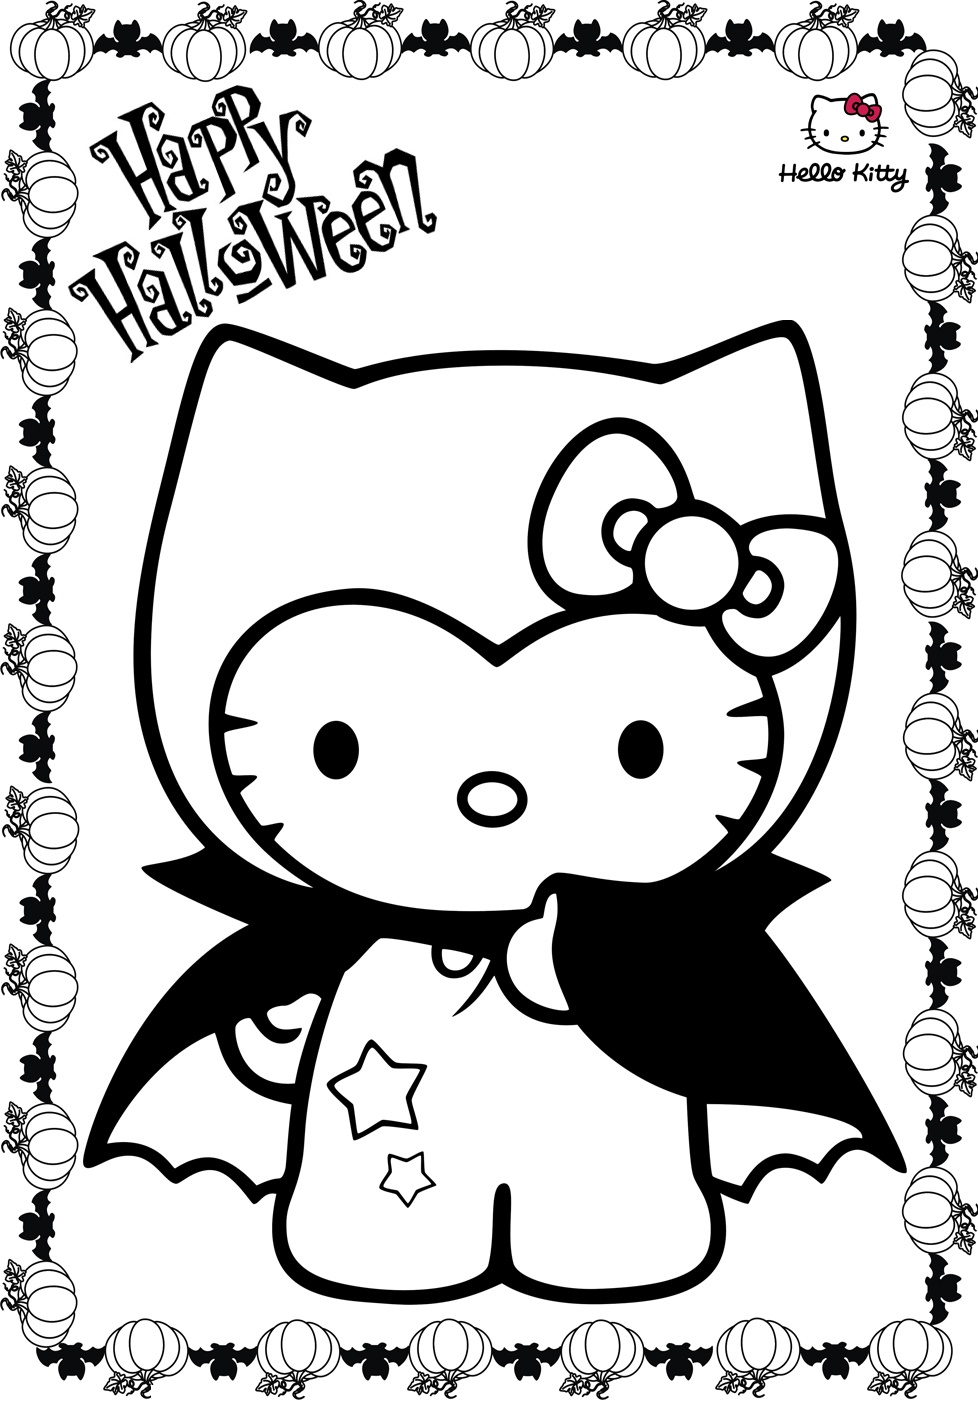 Hello Kitty Halloween Coloring Pages Printable Hello Kitty Coloring Hello Kitty Colouring Pages Kitty Coloring